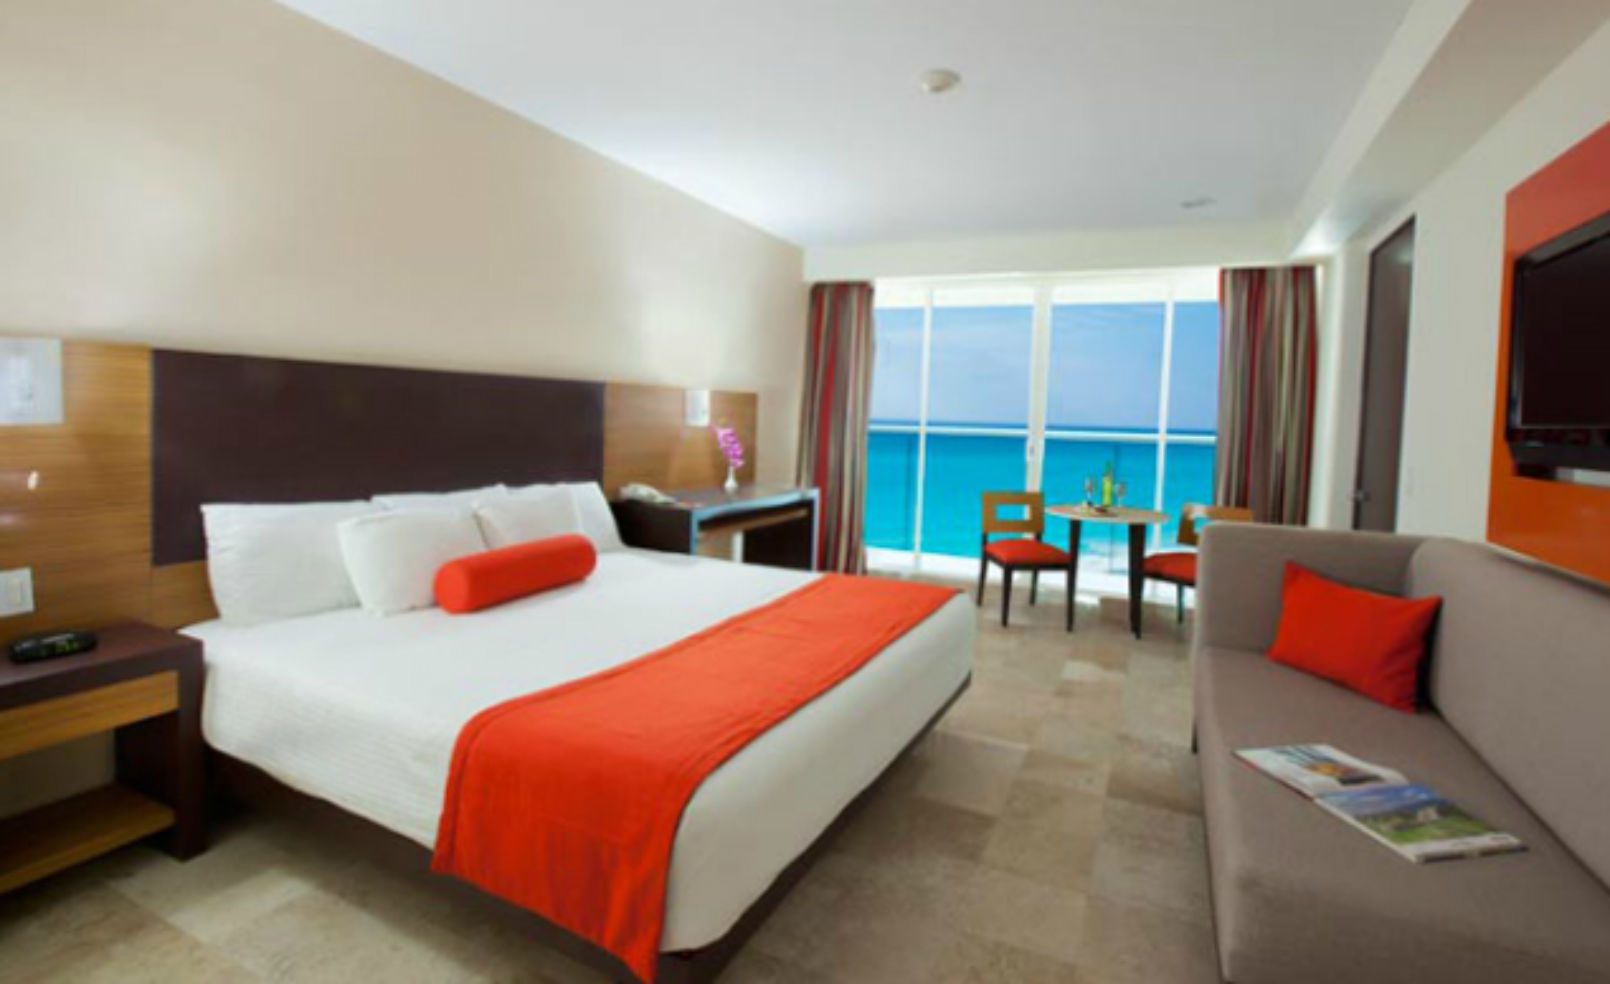 Krystal Cancun room